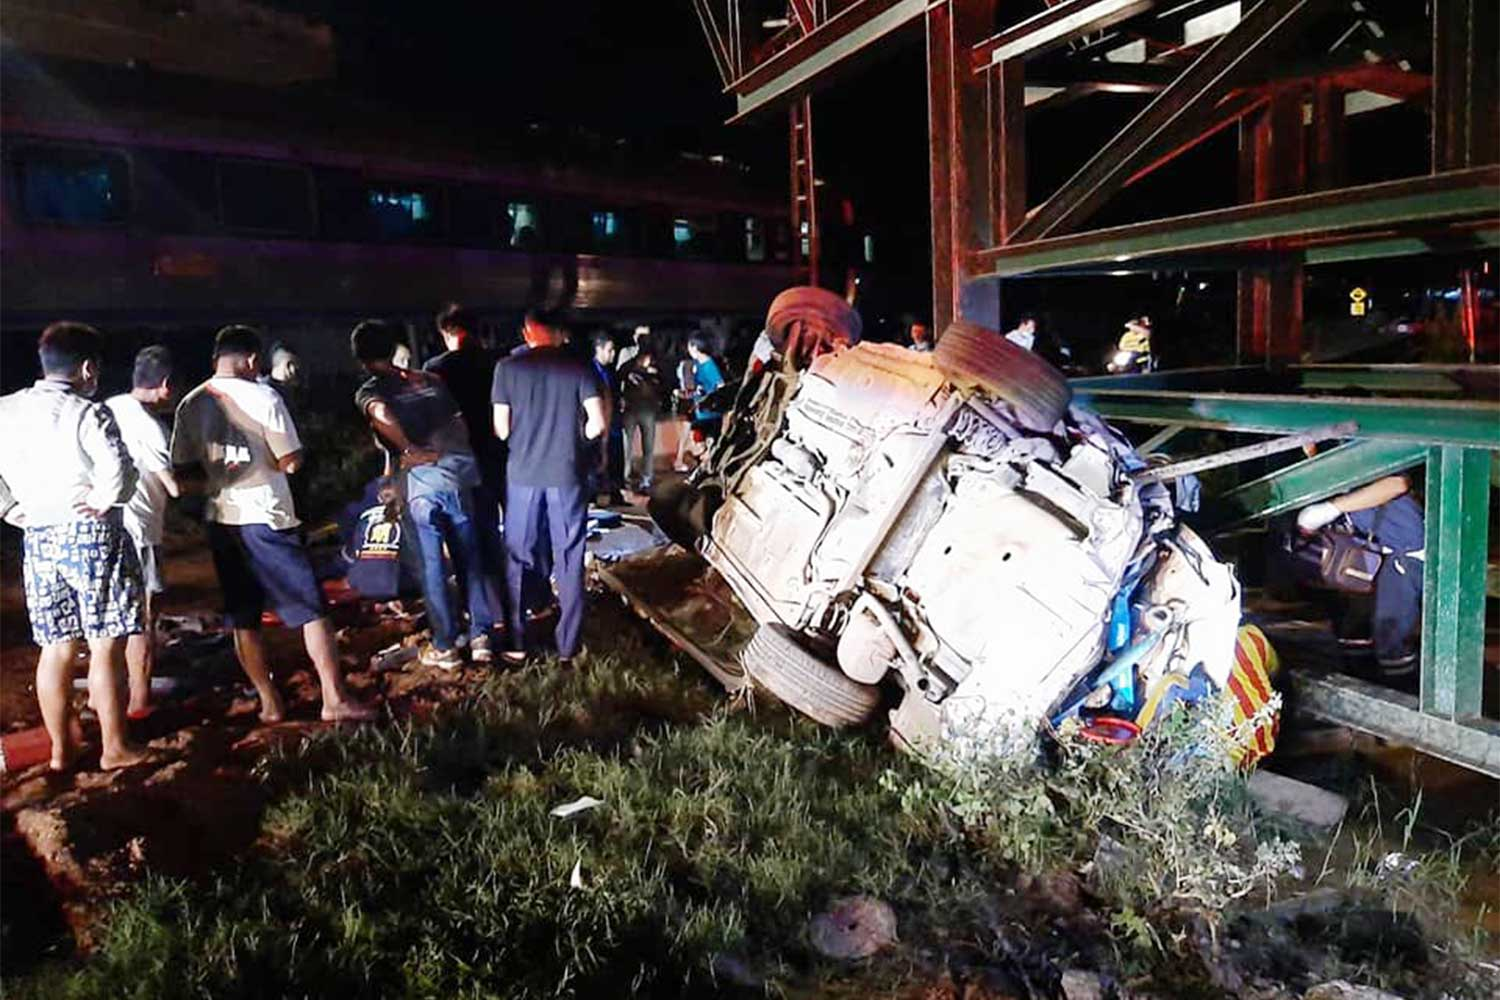 The crumpled Toyota Vios after it was hit by a train at an unguarded crossing in Khao Yoi district, southern Phetchaburi province, on Thursday night. A woman passenger as killed and two men injured. (Photo: Sawang Sanphet rescue foundation Facebook page)